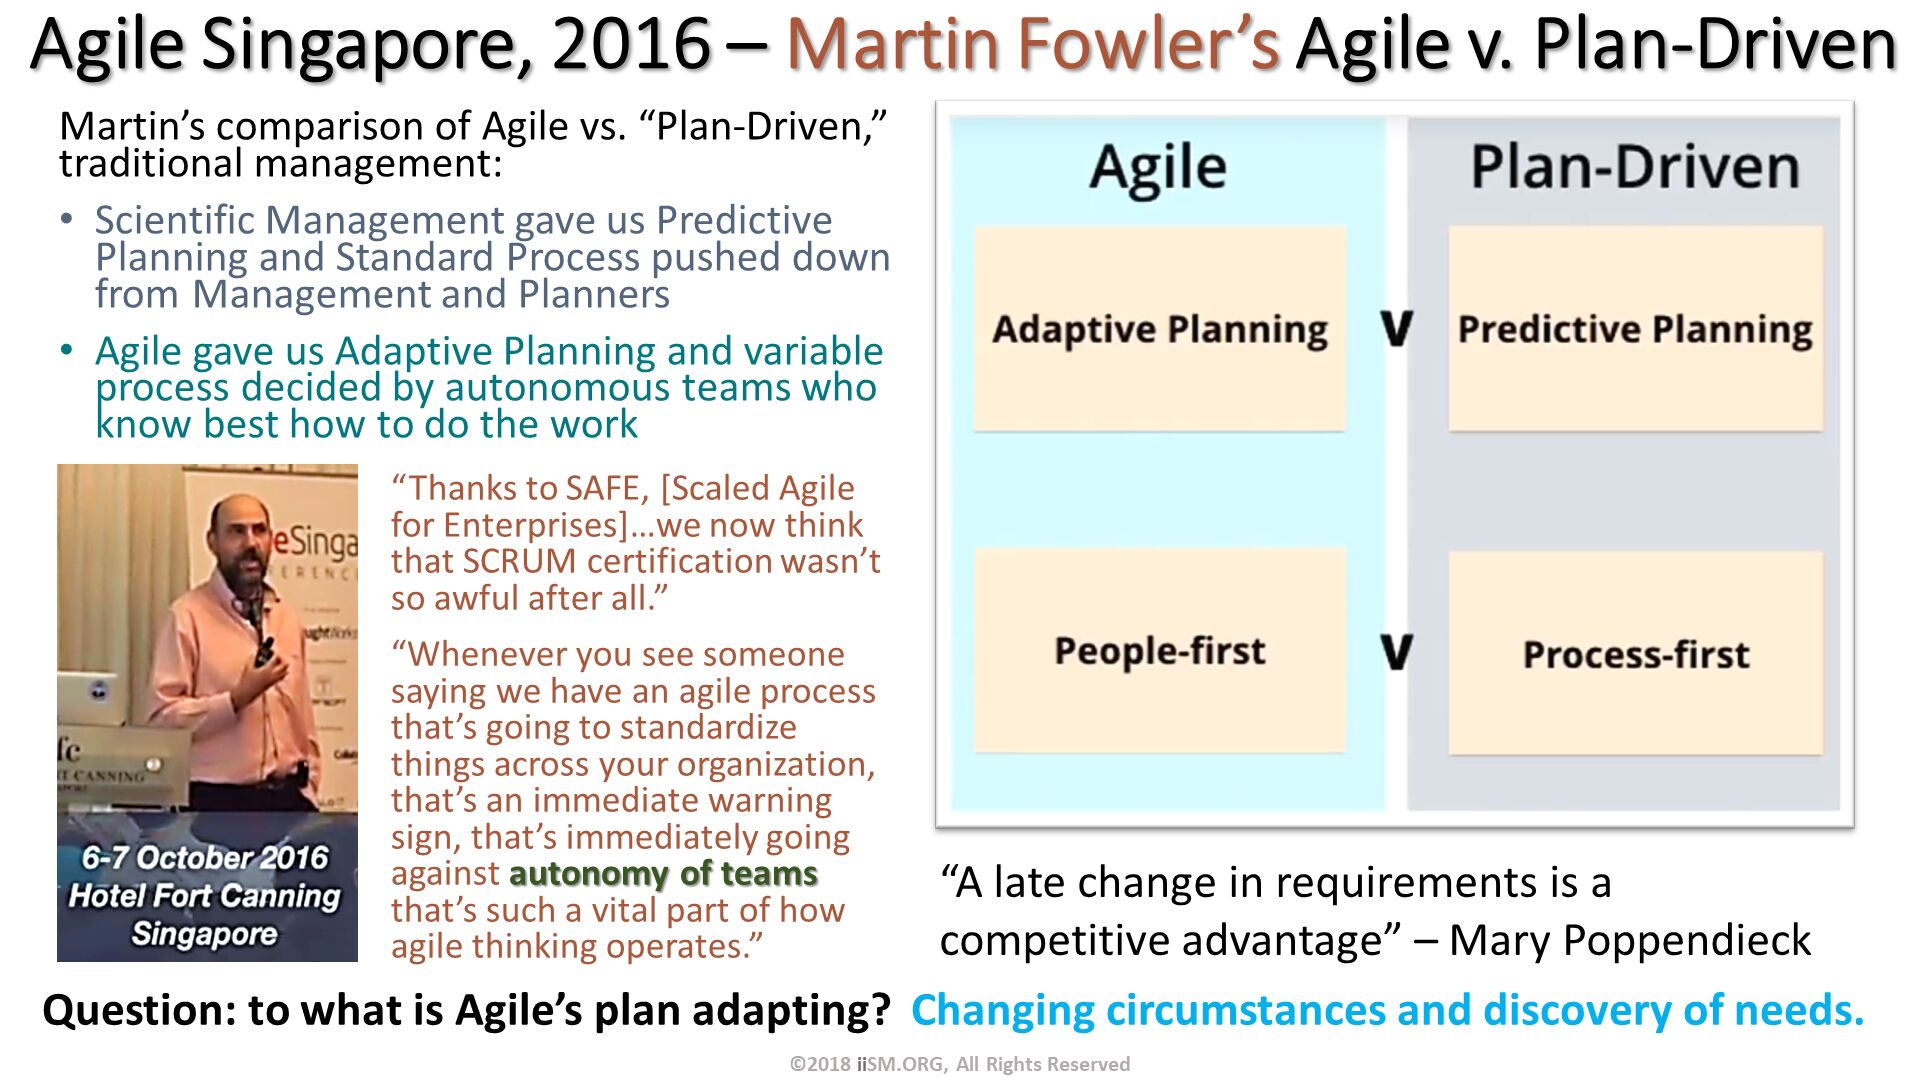 "Martin's comparison of Agile vs. ""Plan-Driven,"" traditional management: Scientific Management gave us Predictive Planning and Standard Process pushed down from Management and Planners Agile gave us Adaptive Planning and variable process decided by autonomous teams who know best how to do the work. Agile Singapore, 2016 – Martin Fowler's Agile v. Plan-Driven. ""Thanks to SAFE, [Scaled Agile for Enterprises]…we now think that SCRUM certification wasn't so awful after all."" ""Whenever you see someone saying we have an agile process that's going to standardize things across your organization, that's an immediate warning sign, that's immediately going against autonomy of teams that's such a vital part of how agile thinking operates."". ""A late change in requirements is a competitive advantage"" – Mary Poppendieck. ©2018 iiSM.ORG, All Rights Reserved. Question: to what is Agile's plan adapting?  Changing circumstances and discovery of needs."